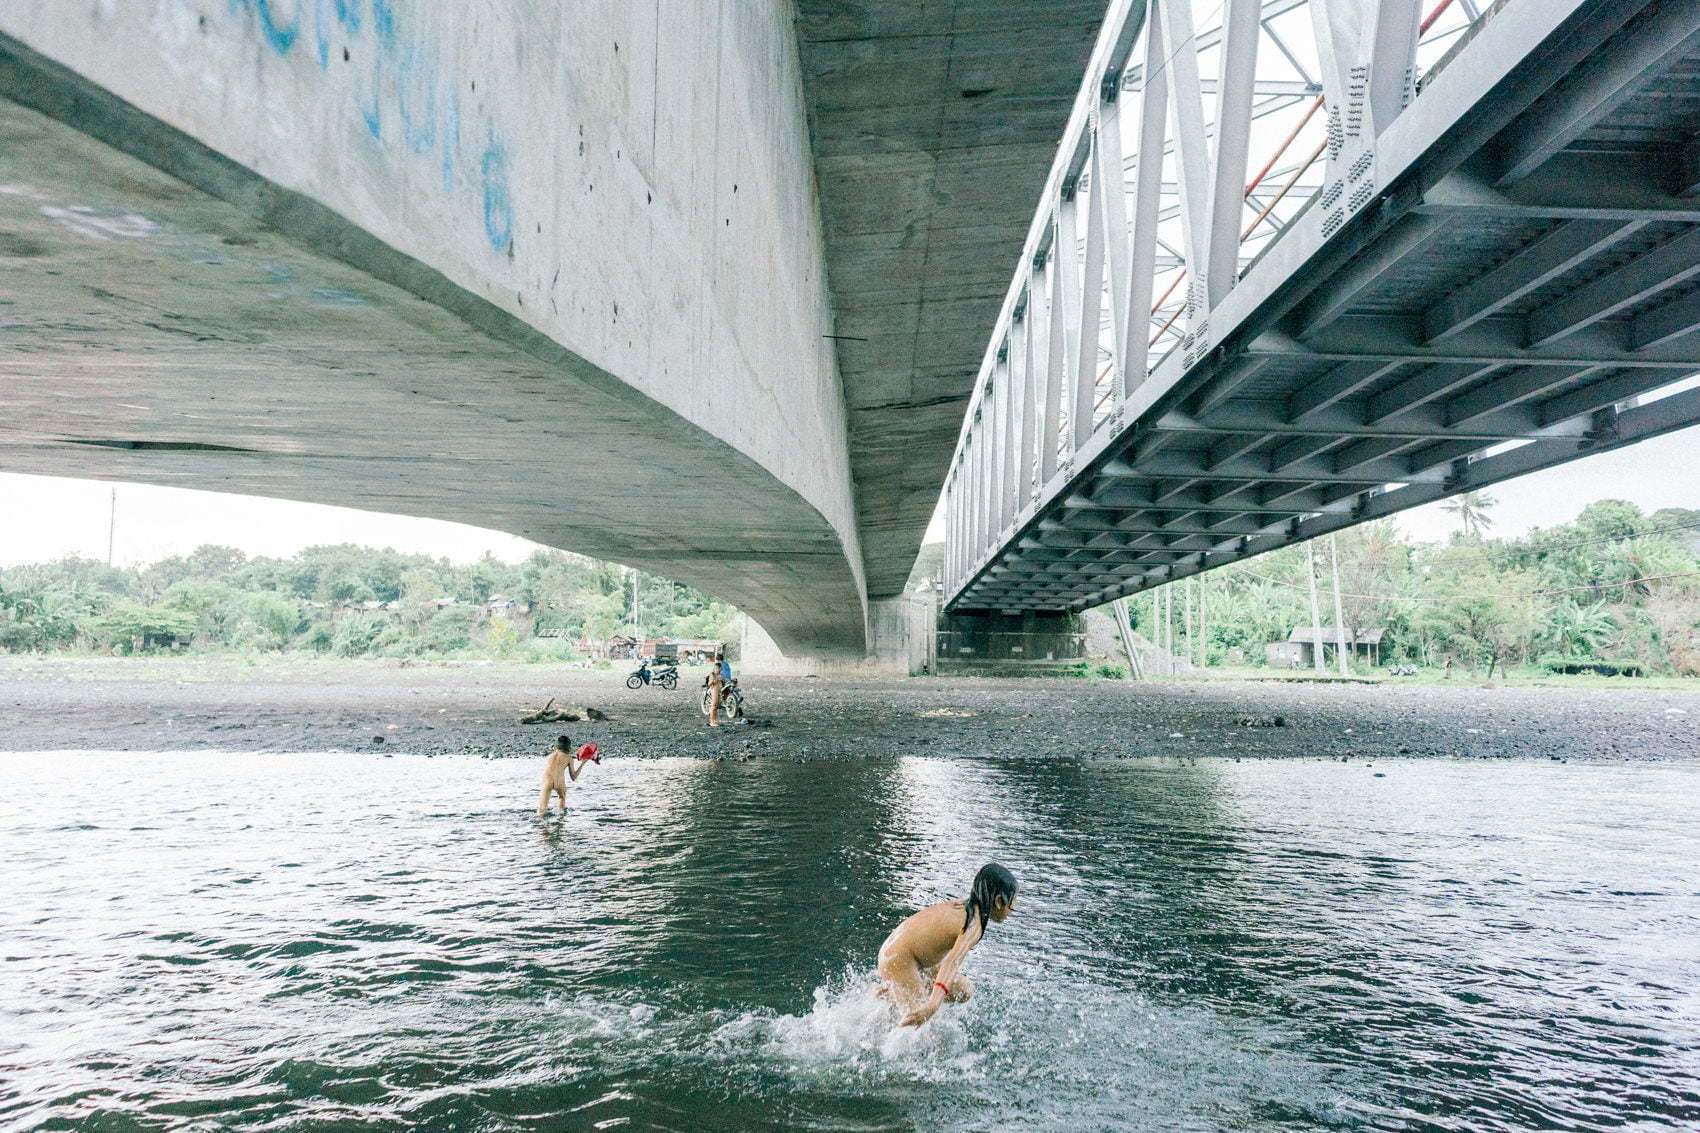 Children take a bath in the river under the bridge